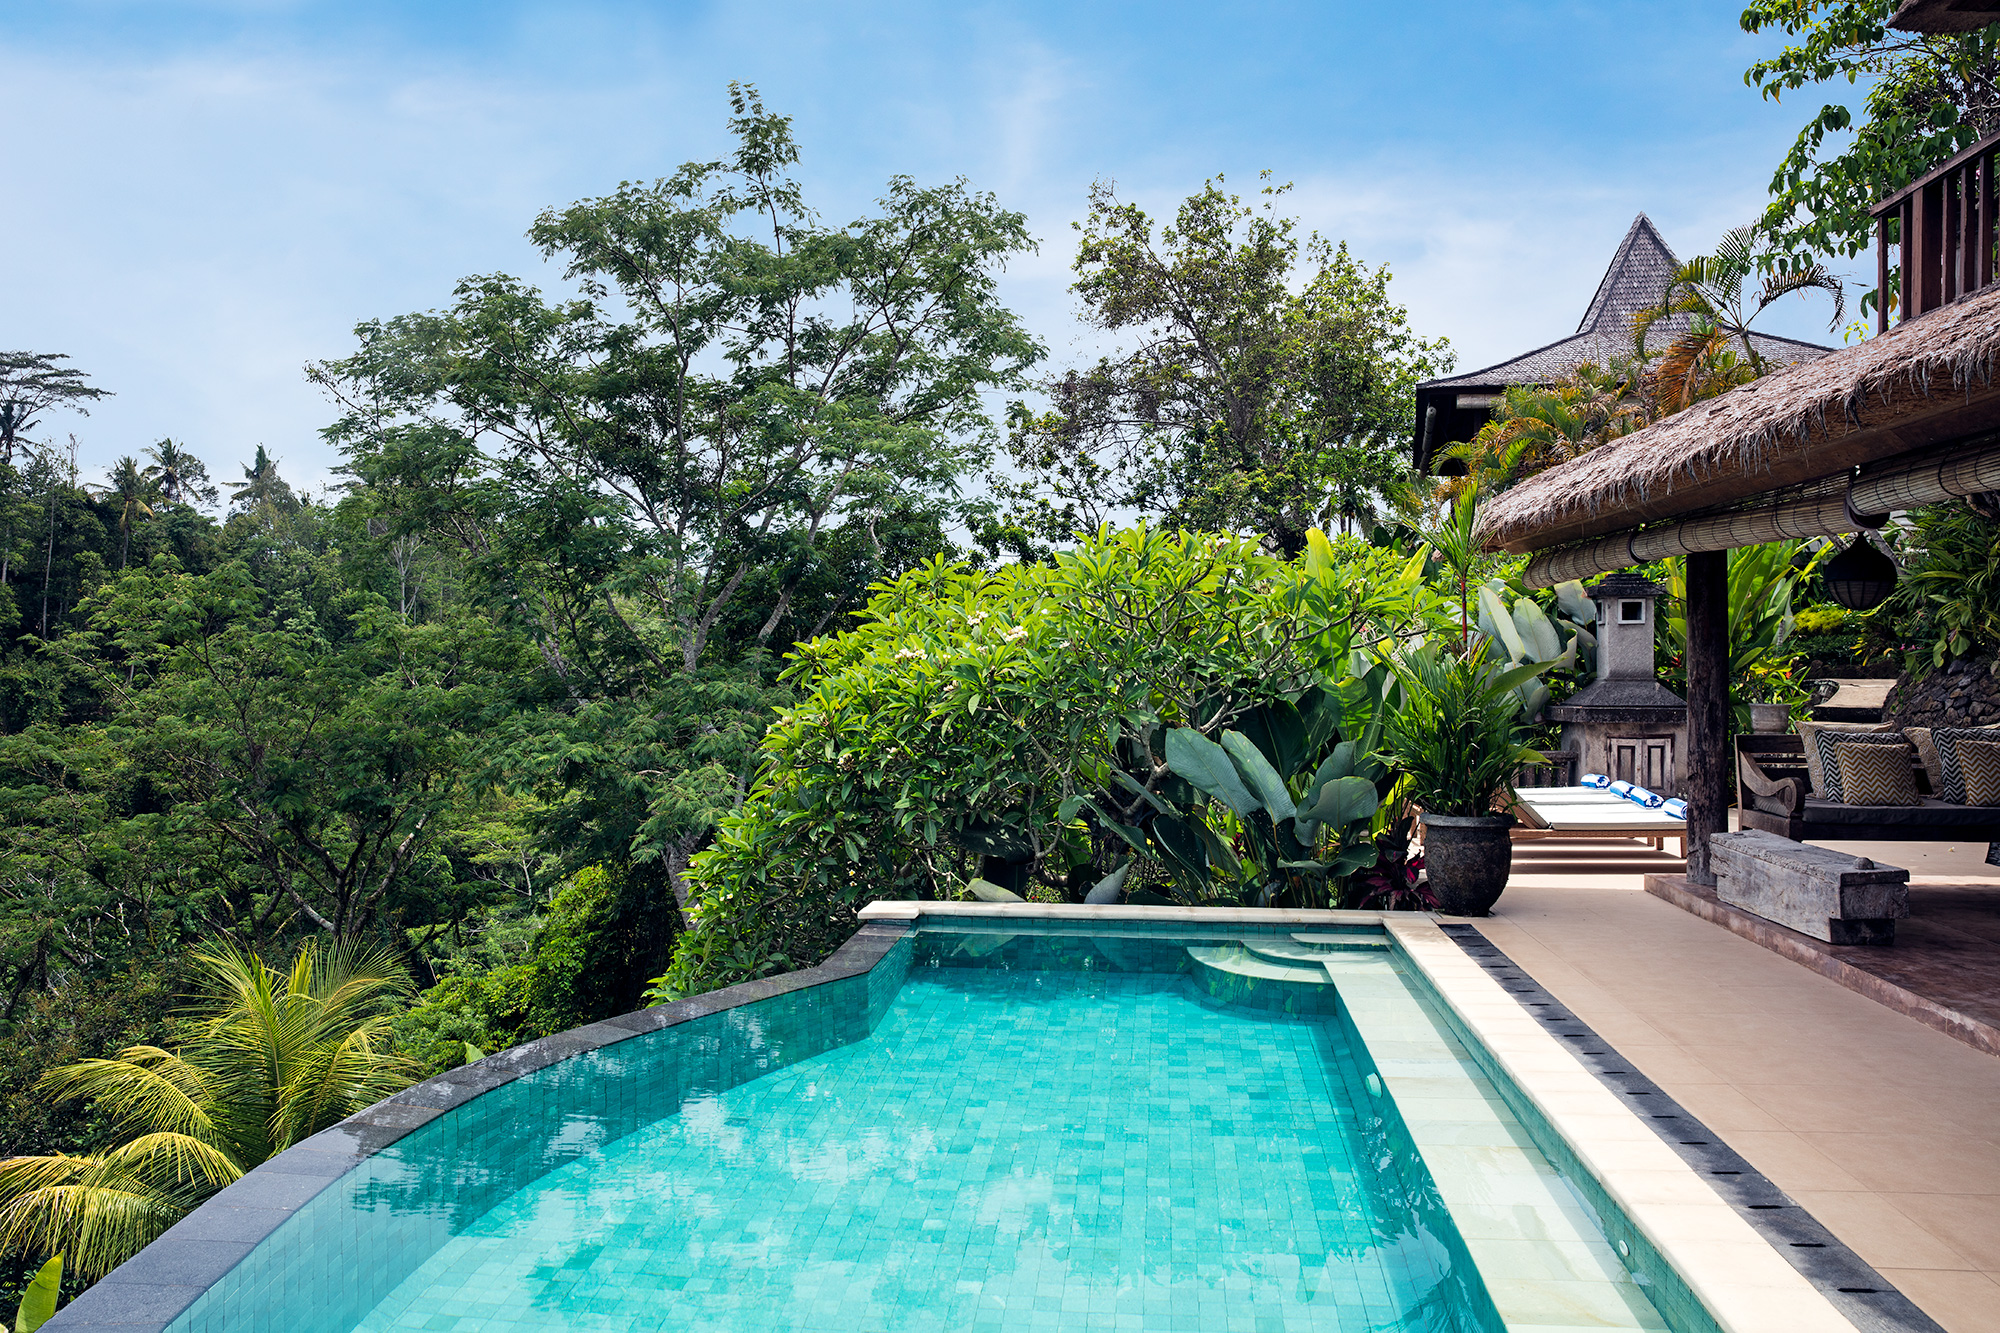 Villa Sagitta, Ubud, Bali, The 10-metre infinity pool with magnificent views of the river valley bel